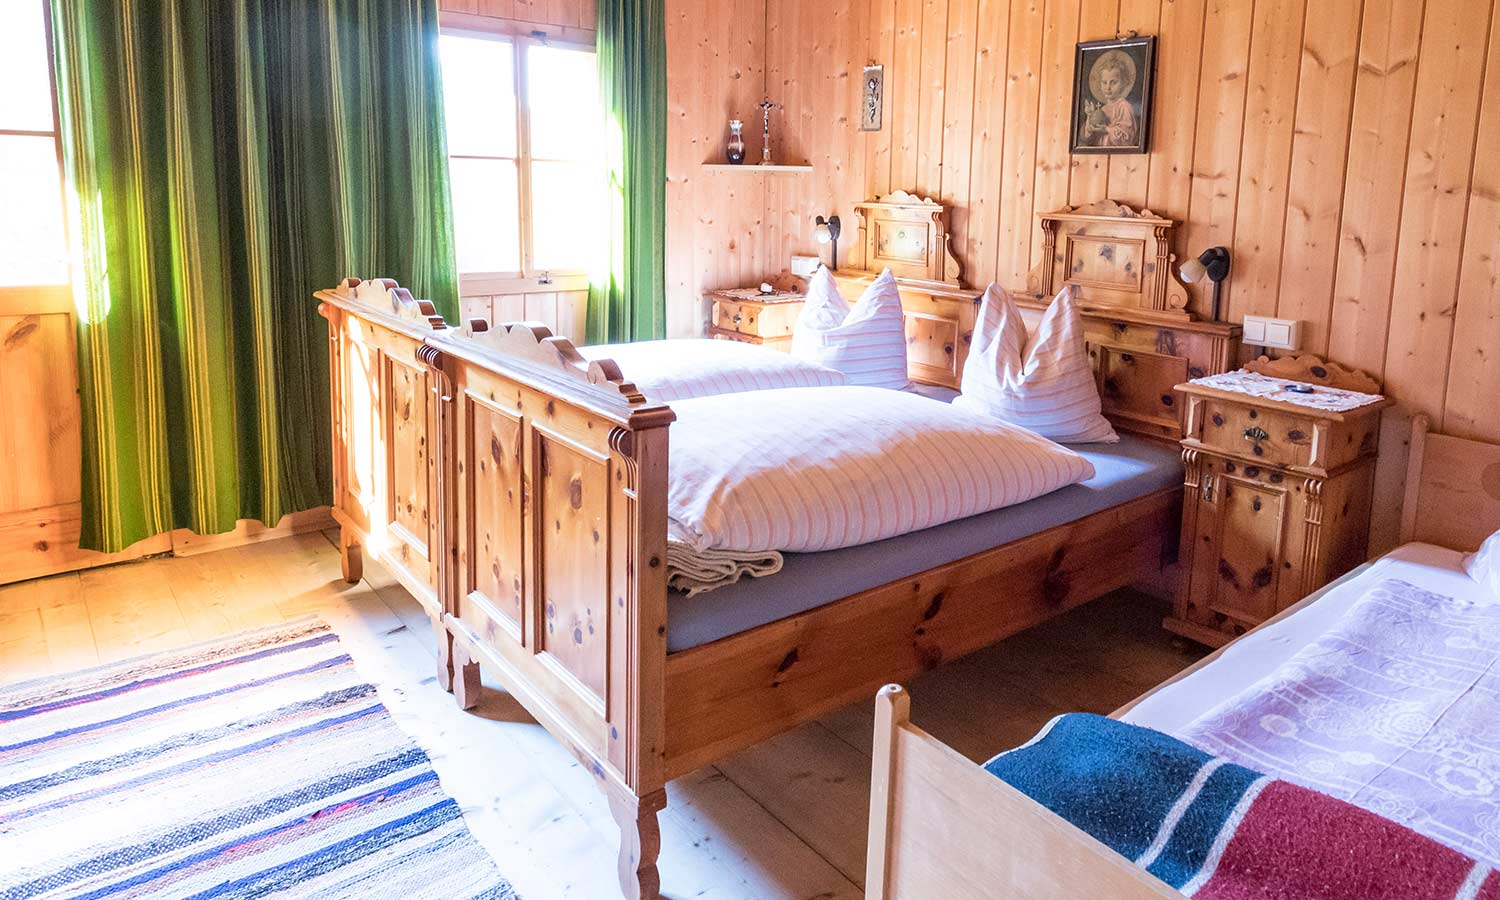 A bed made of un-stained, rustic wood